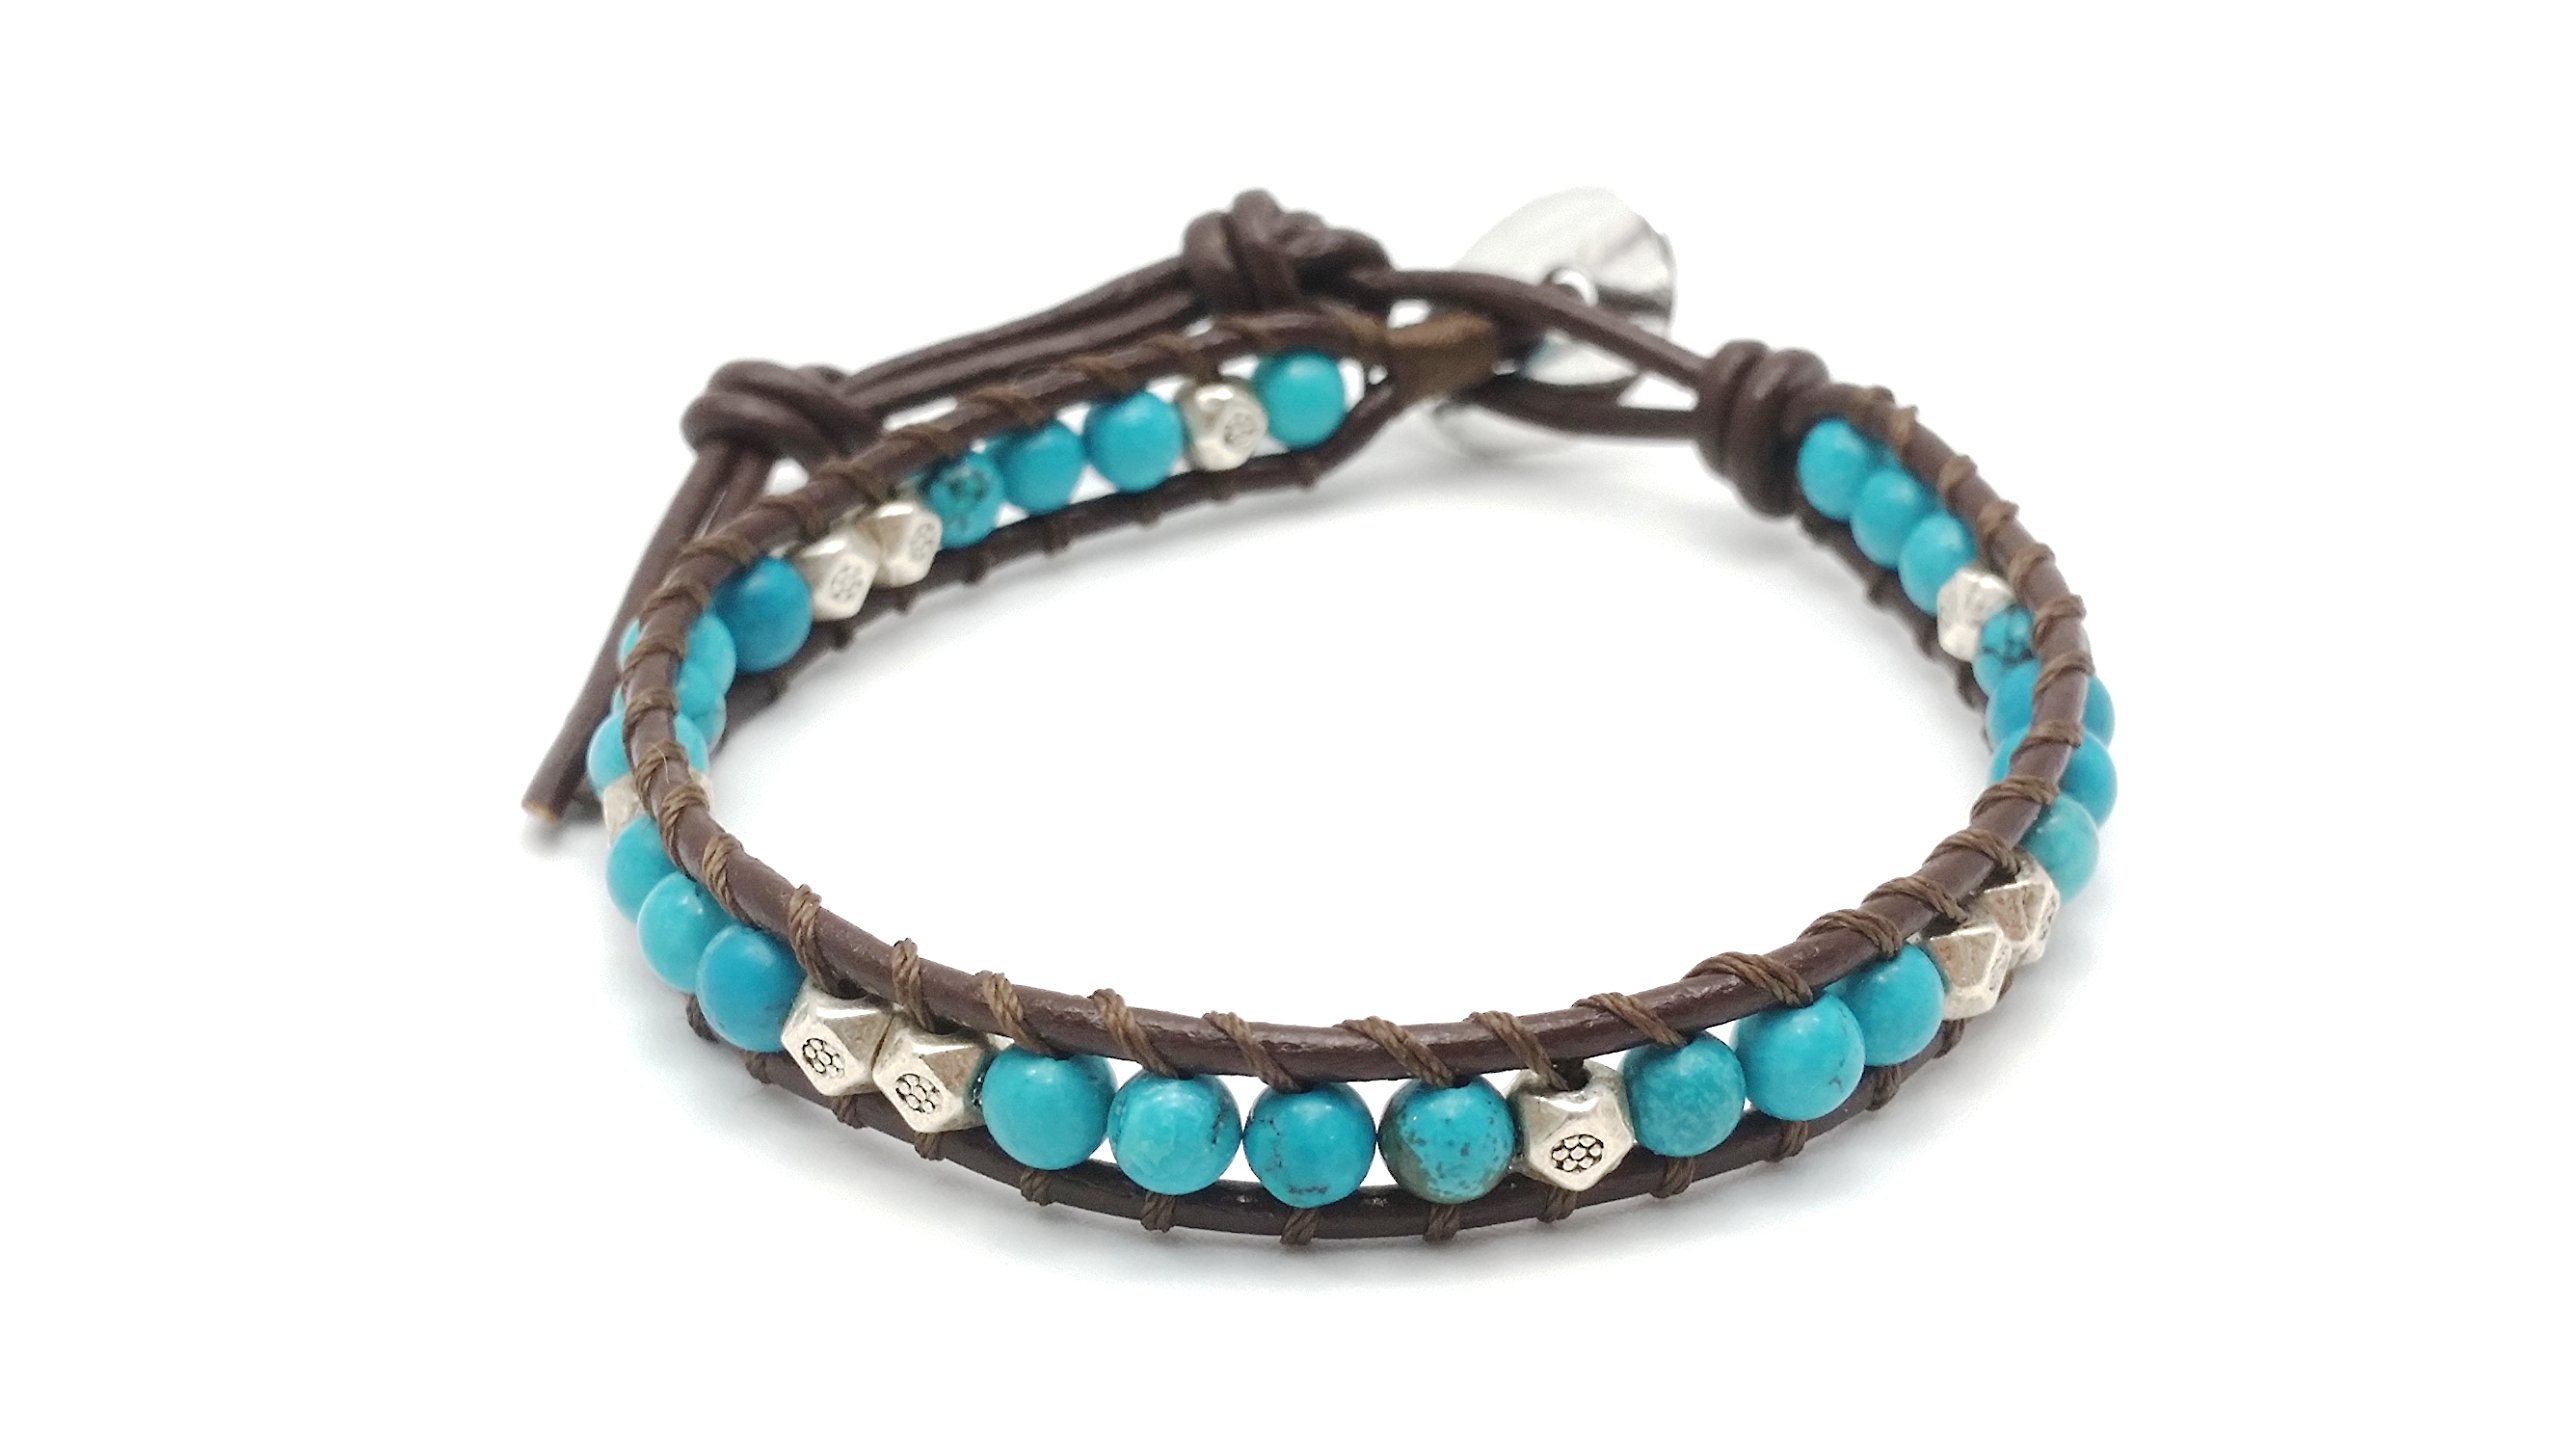 DEW Drops Reconstructed Turquoise and Silver beads Leather Wrap Bracelet, Single Wrap, 4mm/bead by DEW Drops (Image #1)